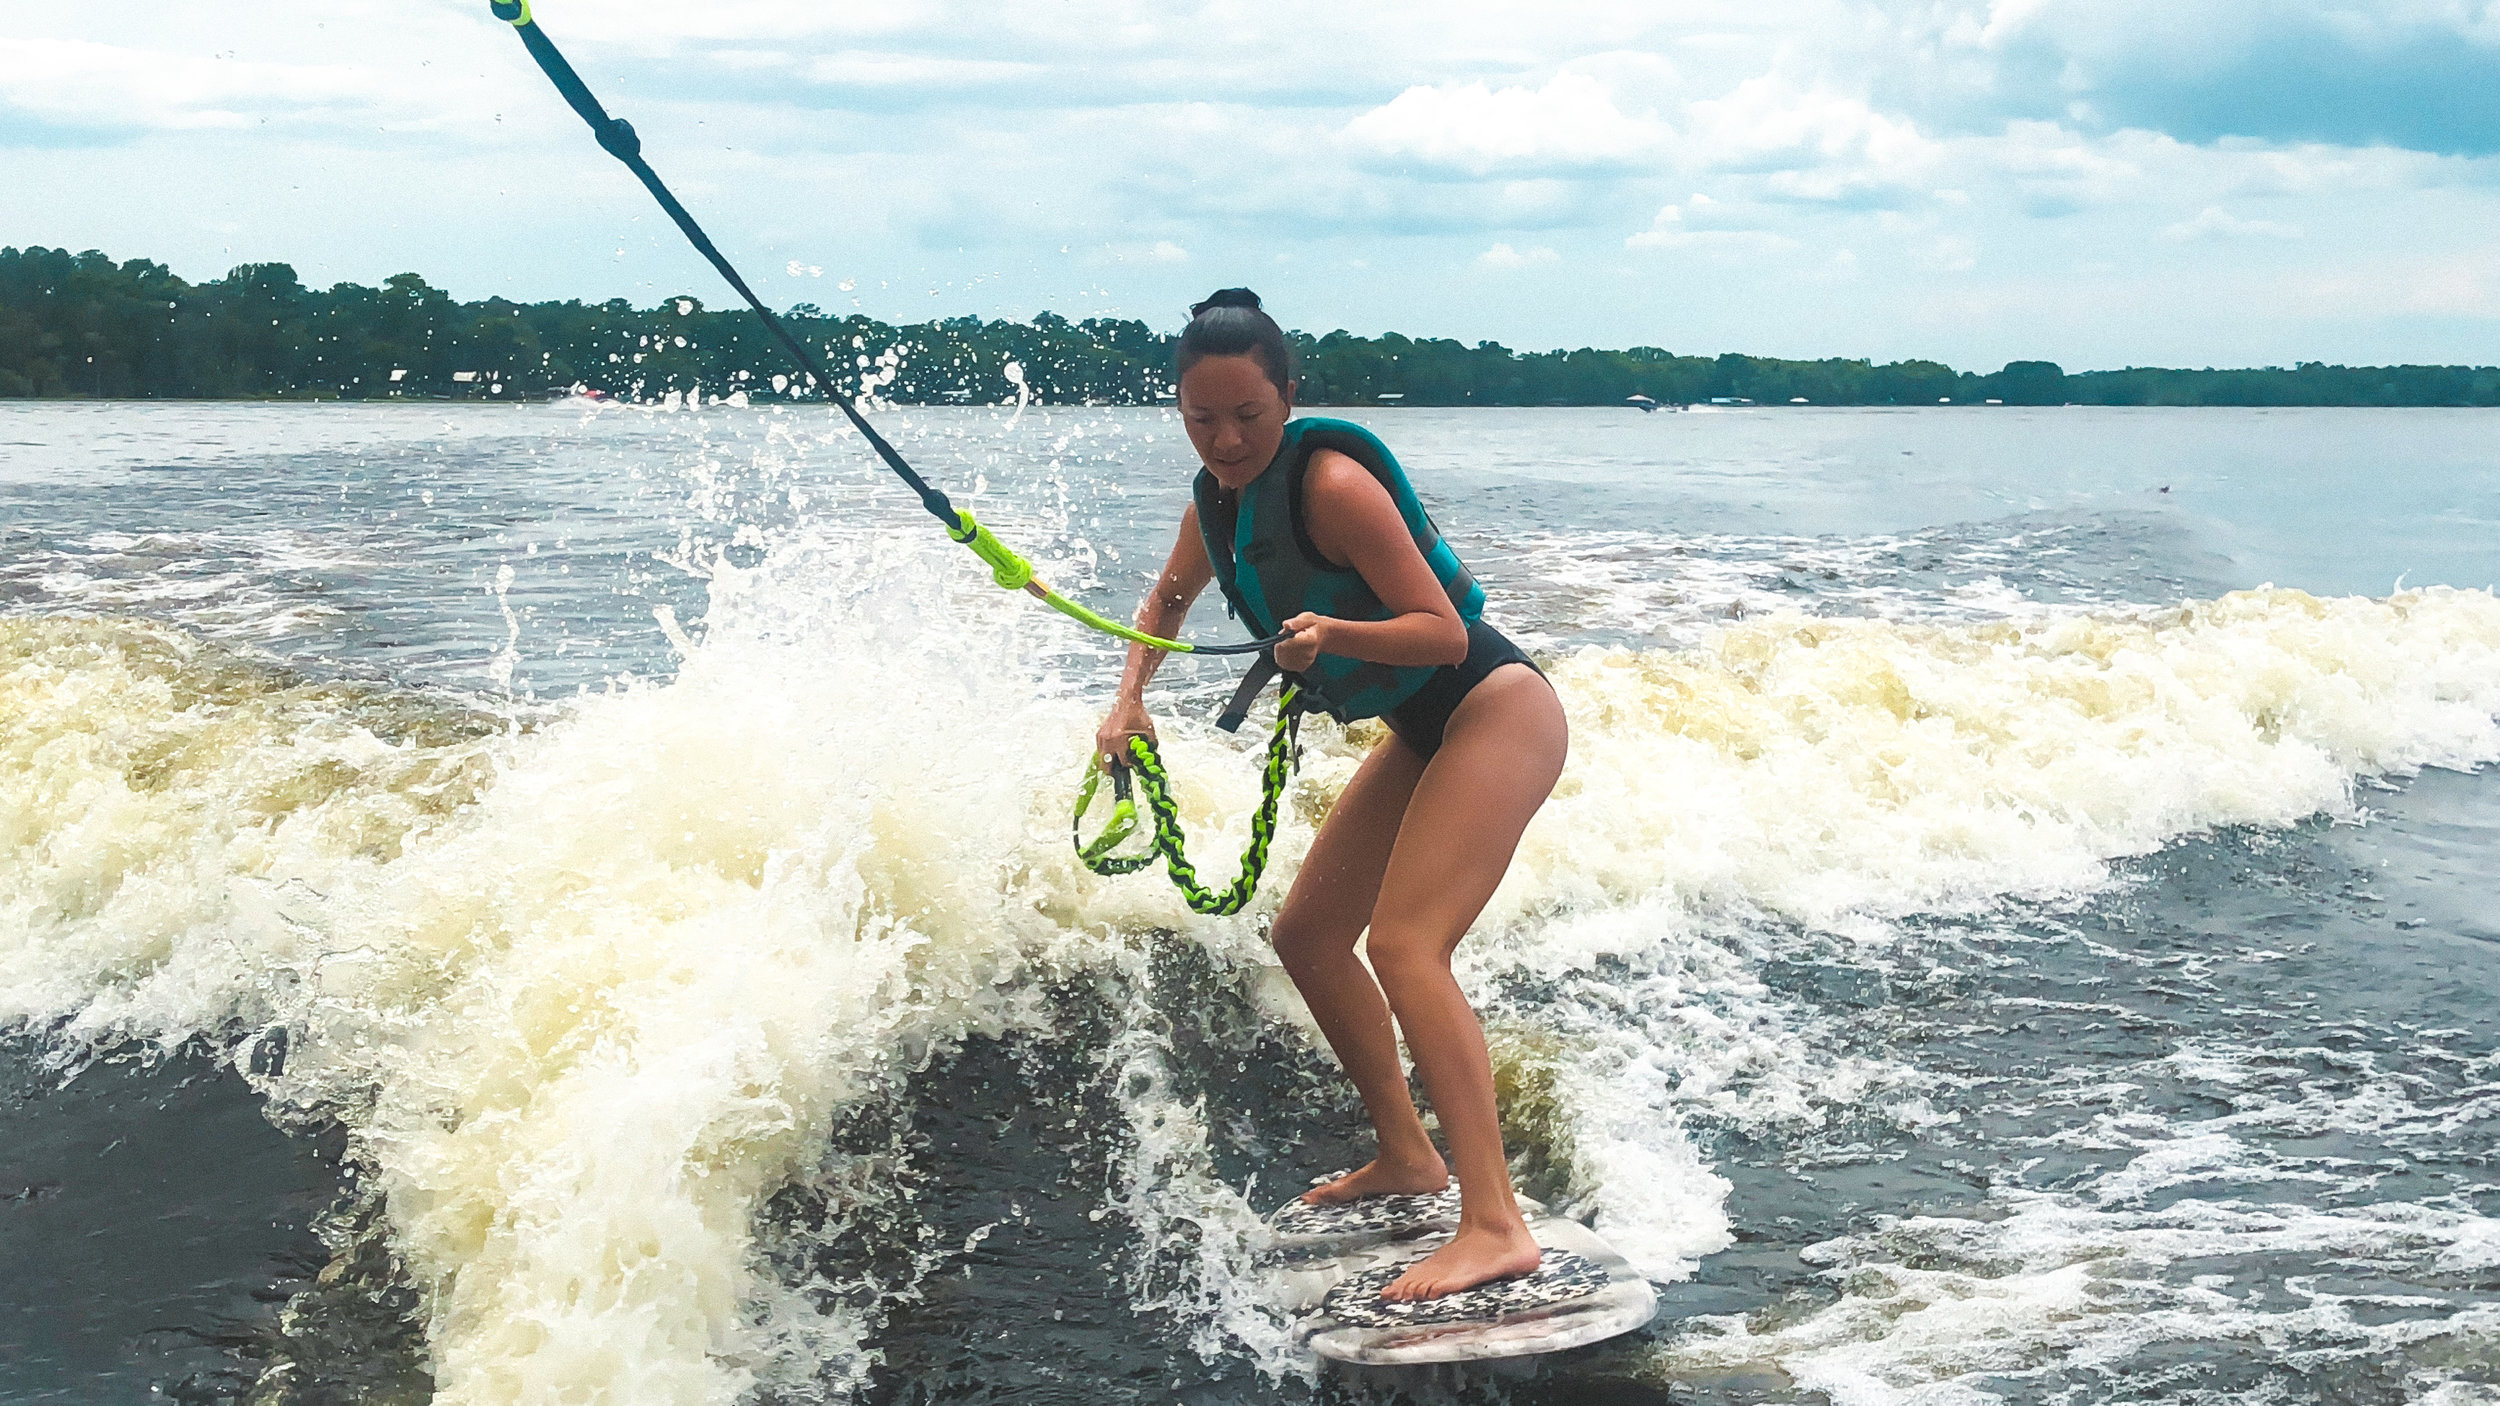 An old friend paid her annual visit to Florida! The weekend after returning from Hawaii - I learned how to wake surf with all the girls while at a family lake house!